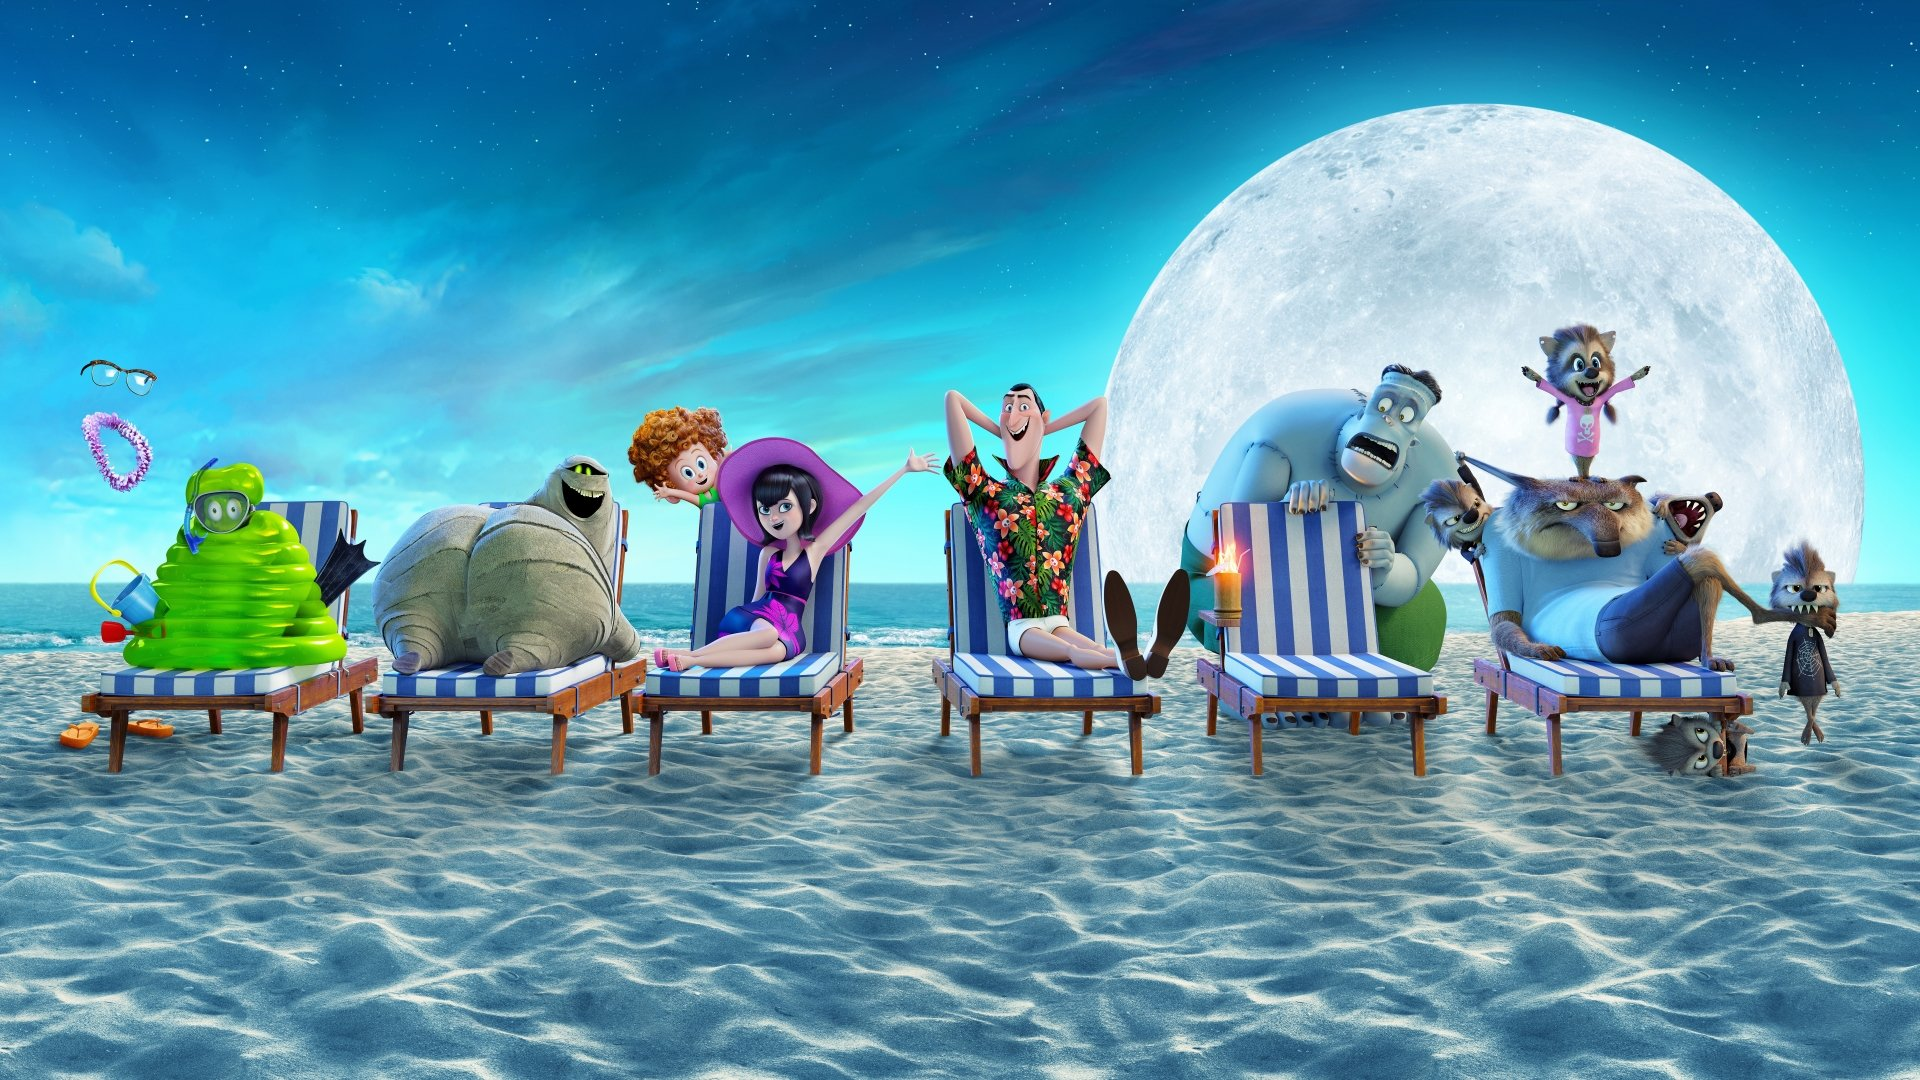 3 Hotel Transylvania 3 Summer Vacation Hd Wallpapers Background Images, Photos, Reviews